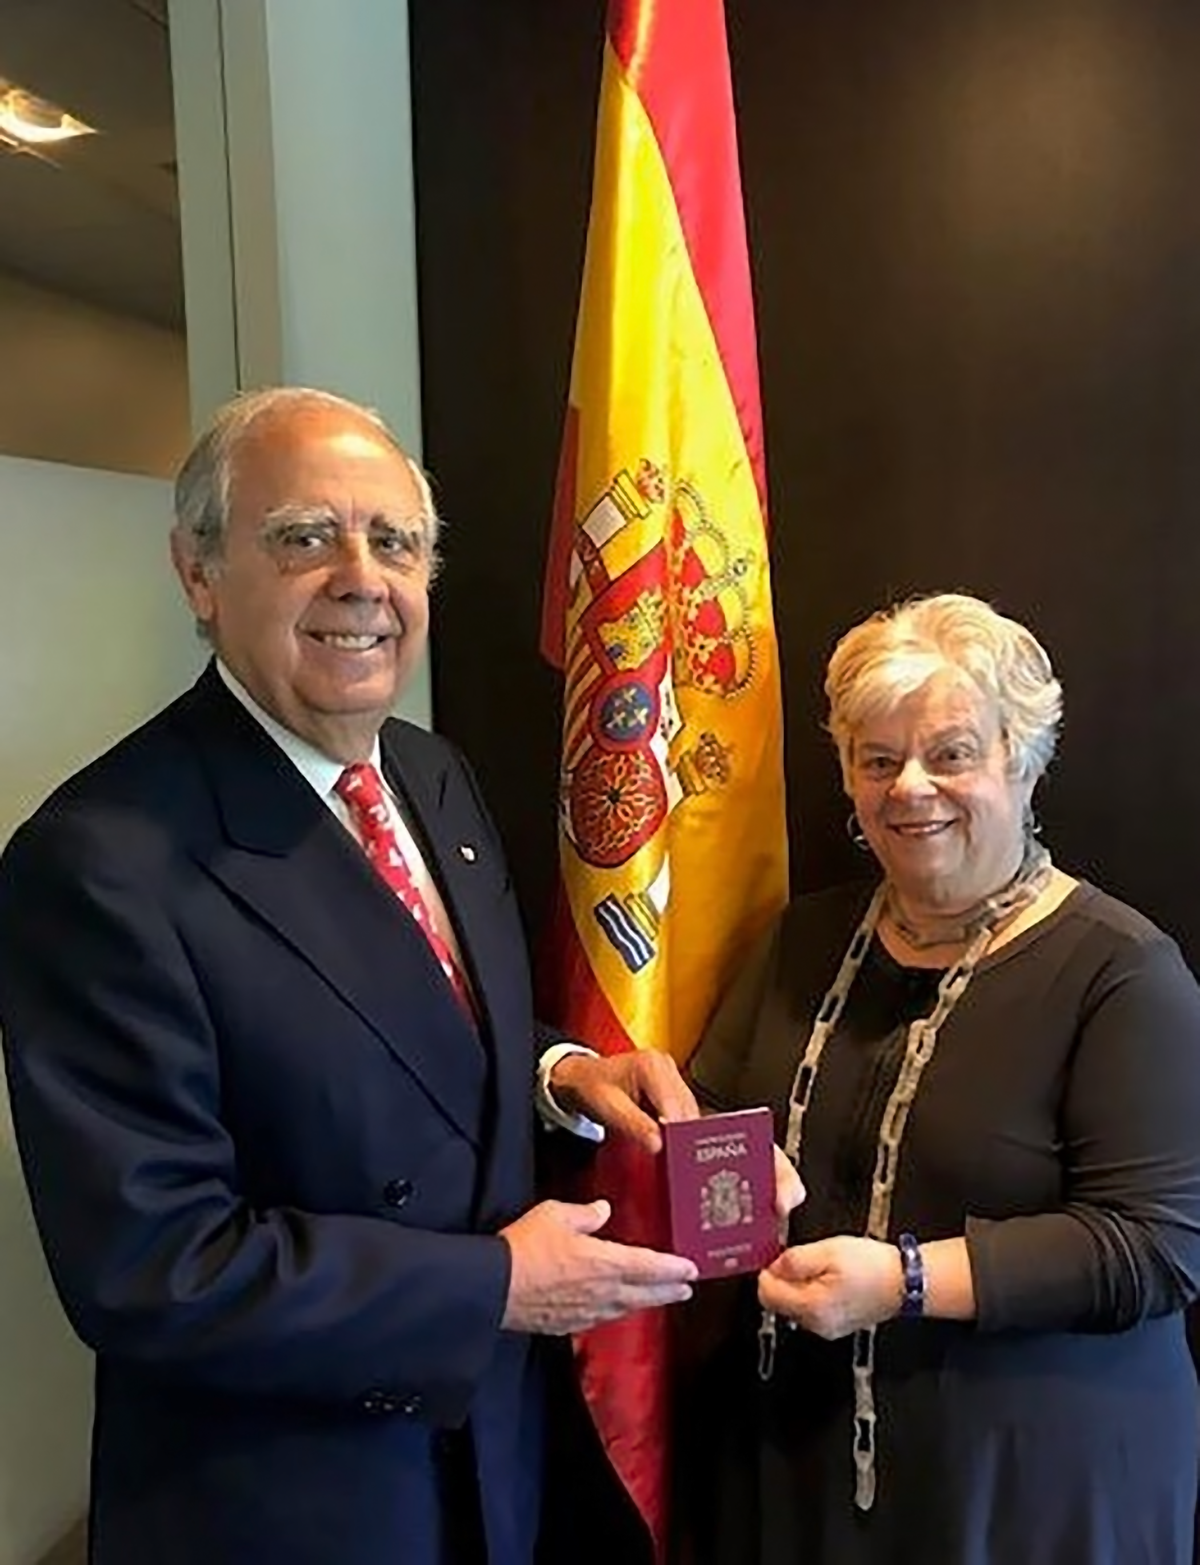 Doreen being presented her new Spanish passport by the Honorary Consul of Spain, Luis Fernando Esteban.